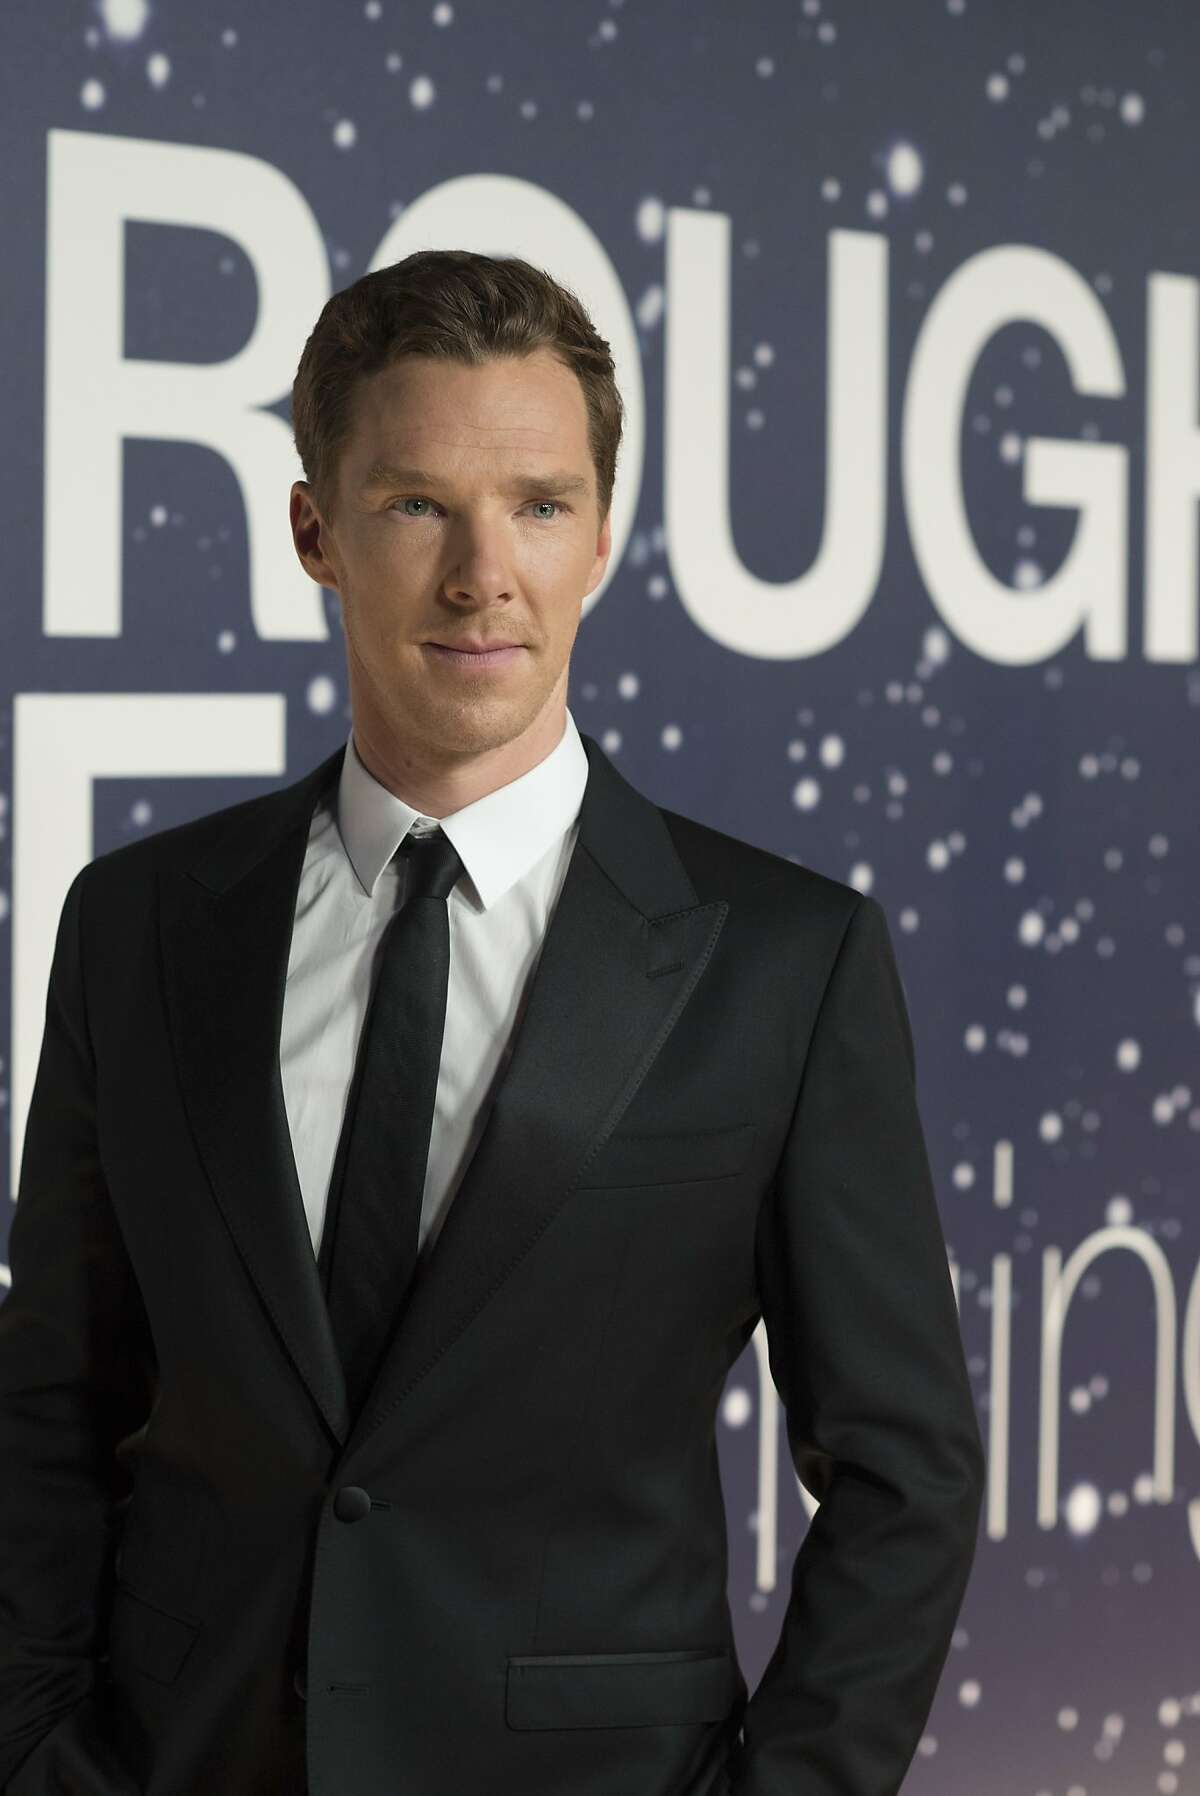 Benedict Cumberbatch arrives at the 2nd Annual Breakthrough Prize Award Ceremony at the NASA Ames Research Center on Sunday, Nov. 9, 2014 in Mountain View, California.